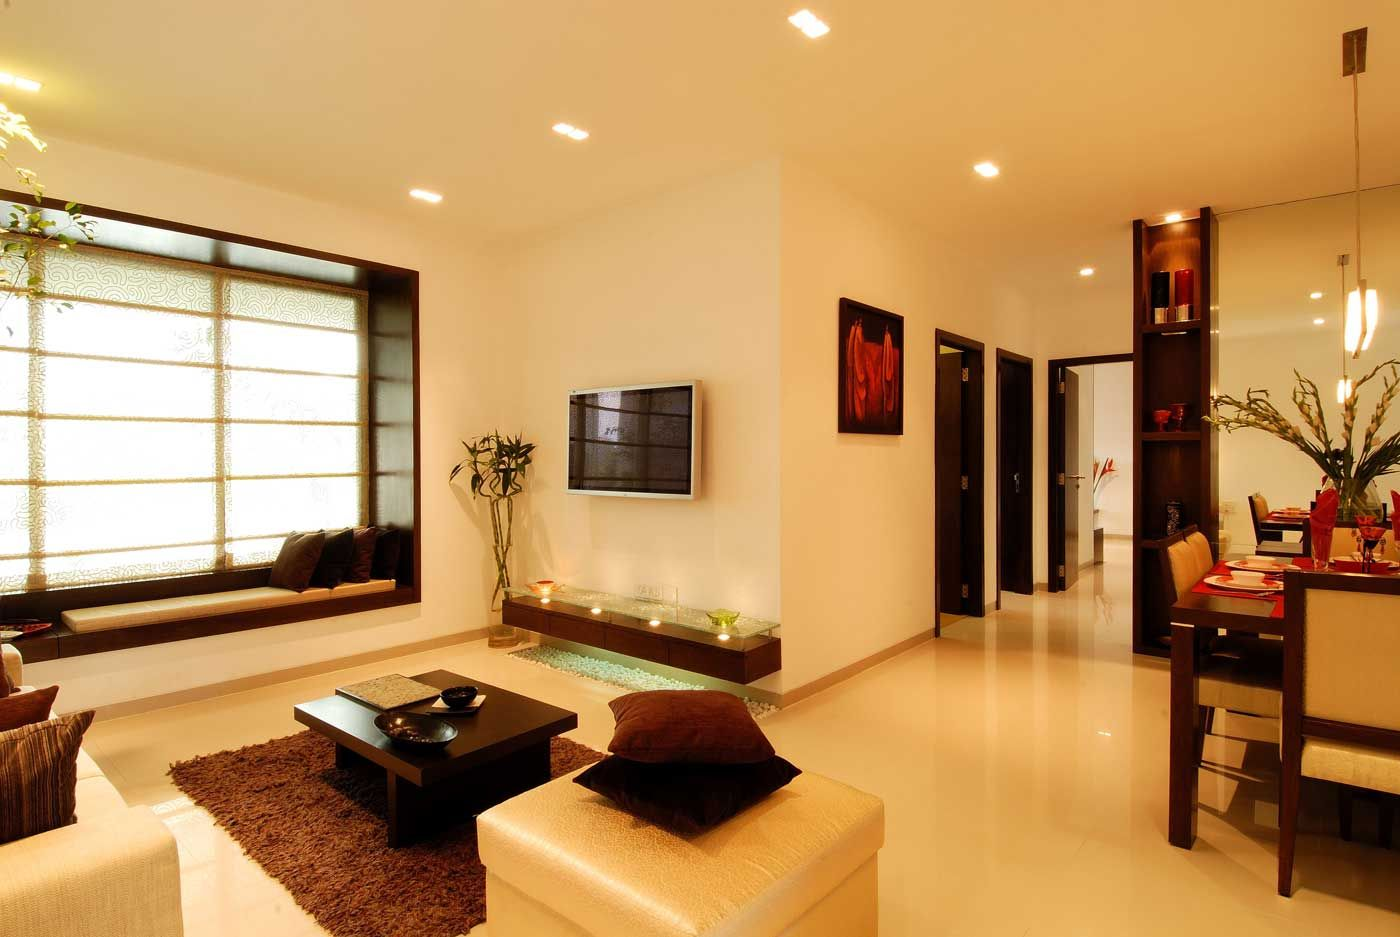 Properties in andheri flats in andheri east mumbai for Home interior design ideas mumbai flats